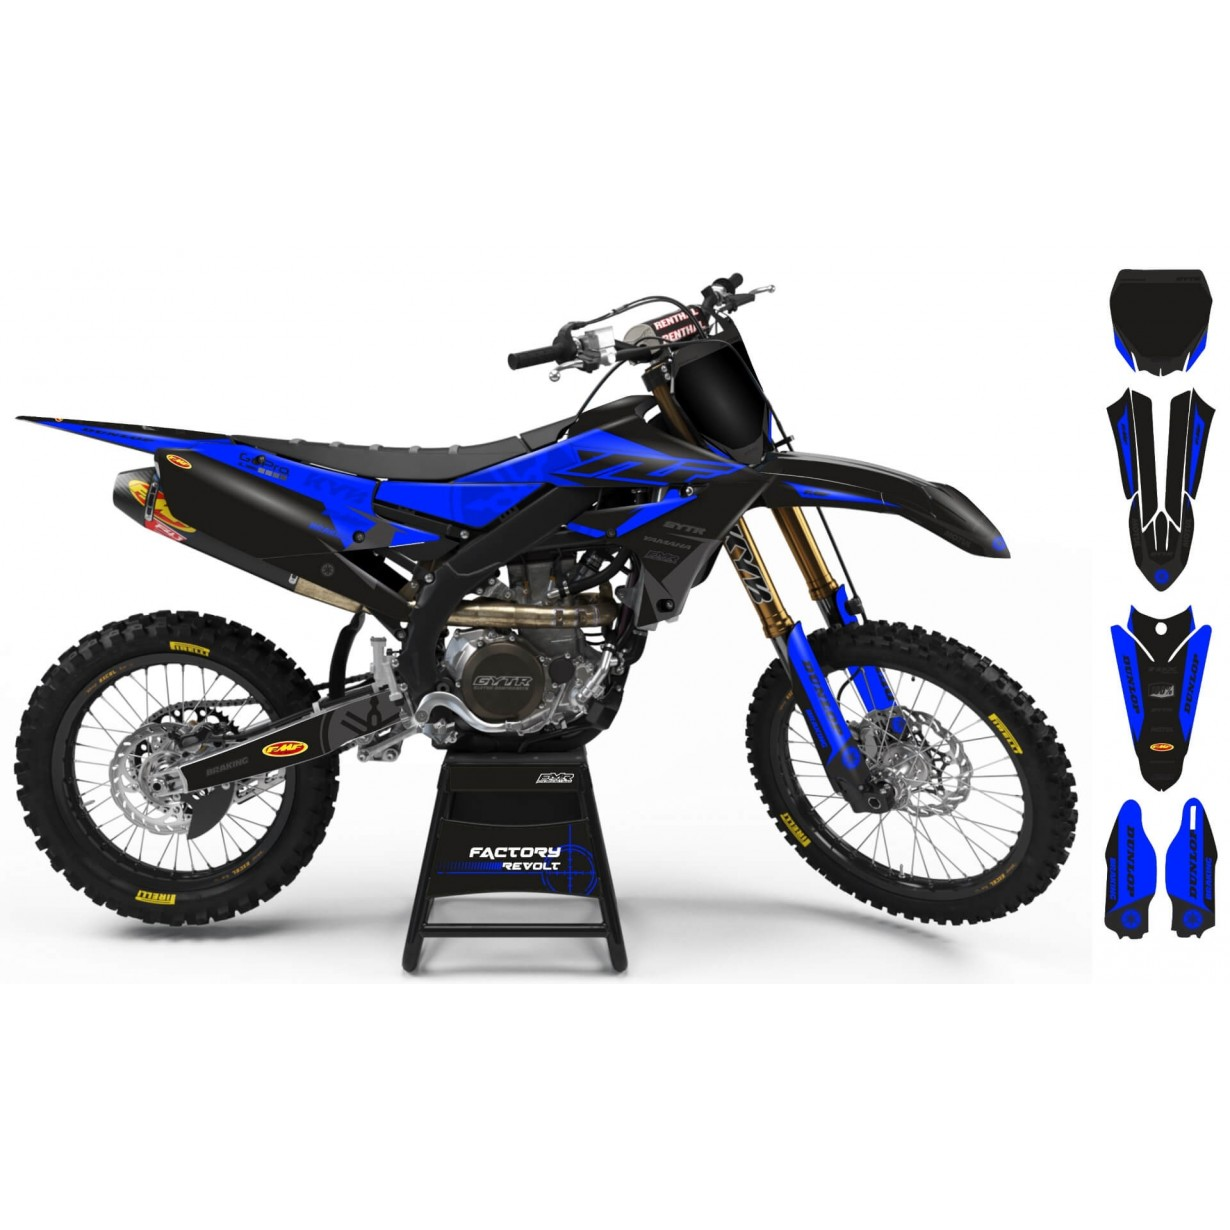 Kit déco Perso YAMAHA Factory Revolt A26E3 black/blue